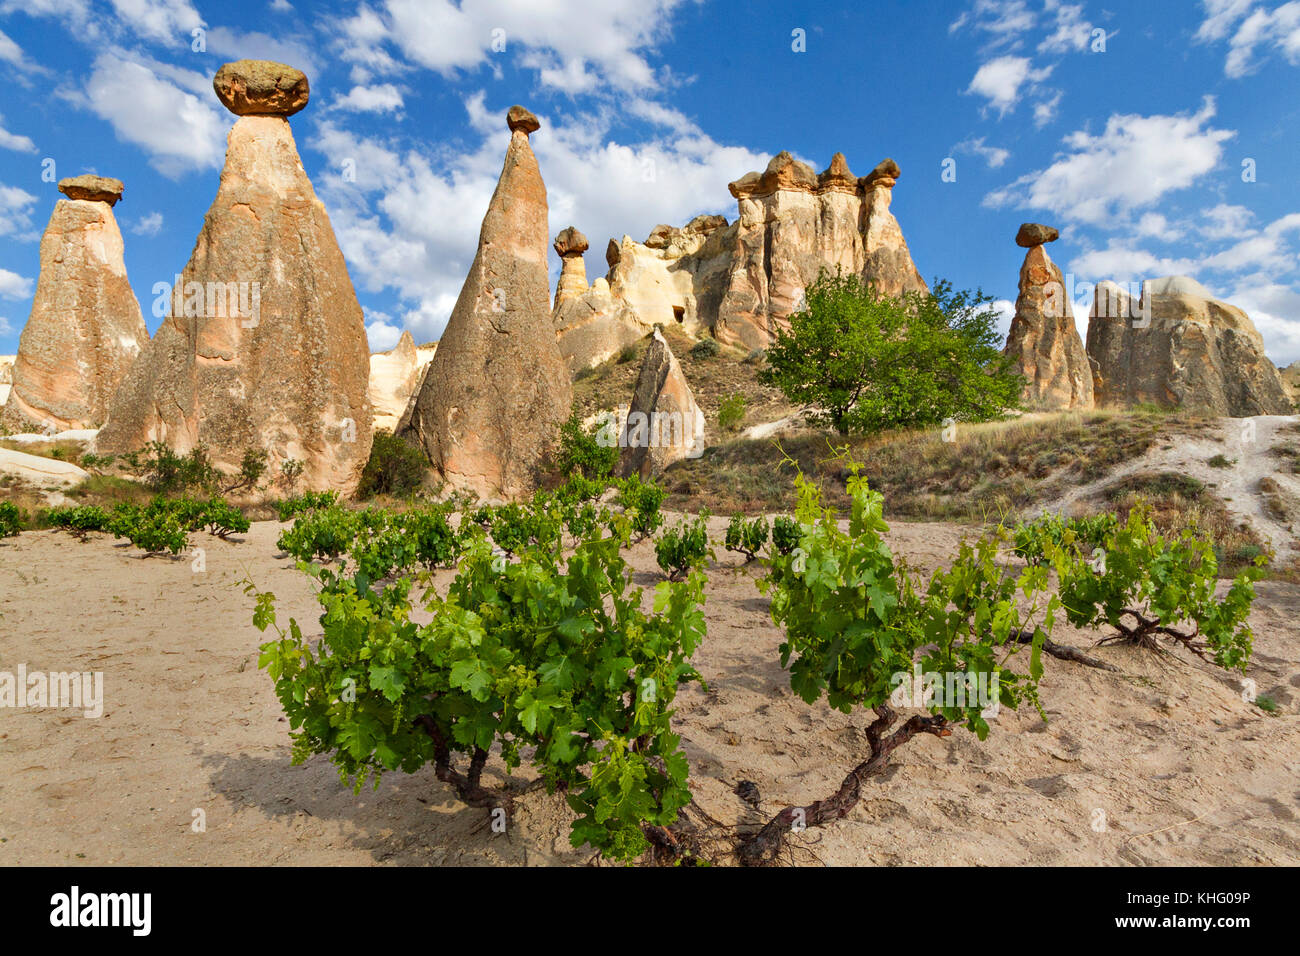 Extreme terrain of Cappadocia with fairy chimneys and volcanic rock formations, Cappadocia, Turkey. - Stock Image